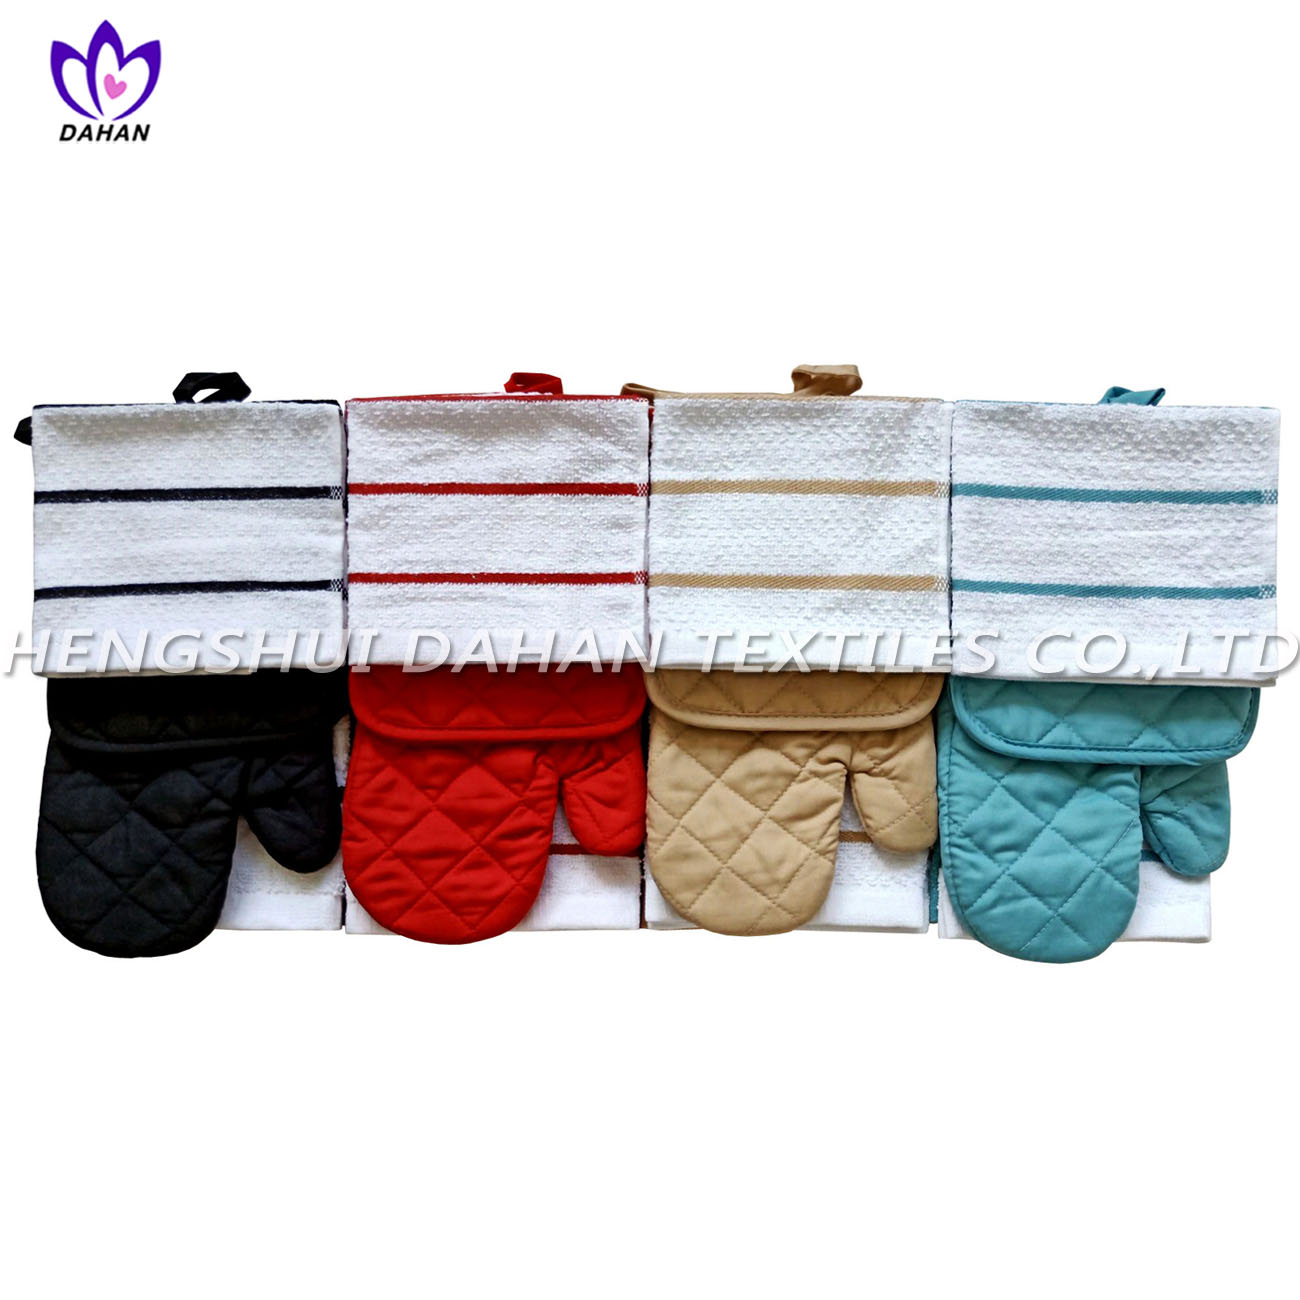 357VW plain colour glove,pot pad, towel 7pack